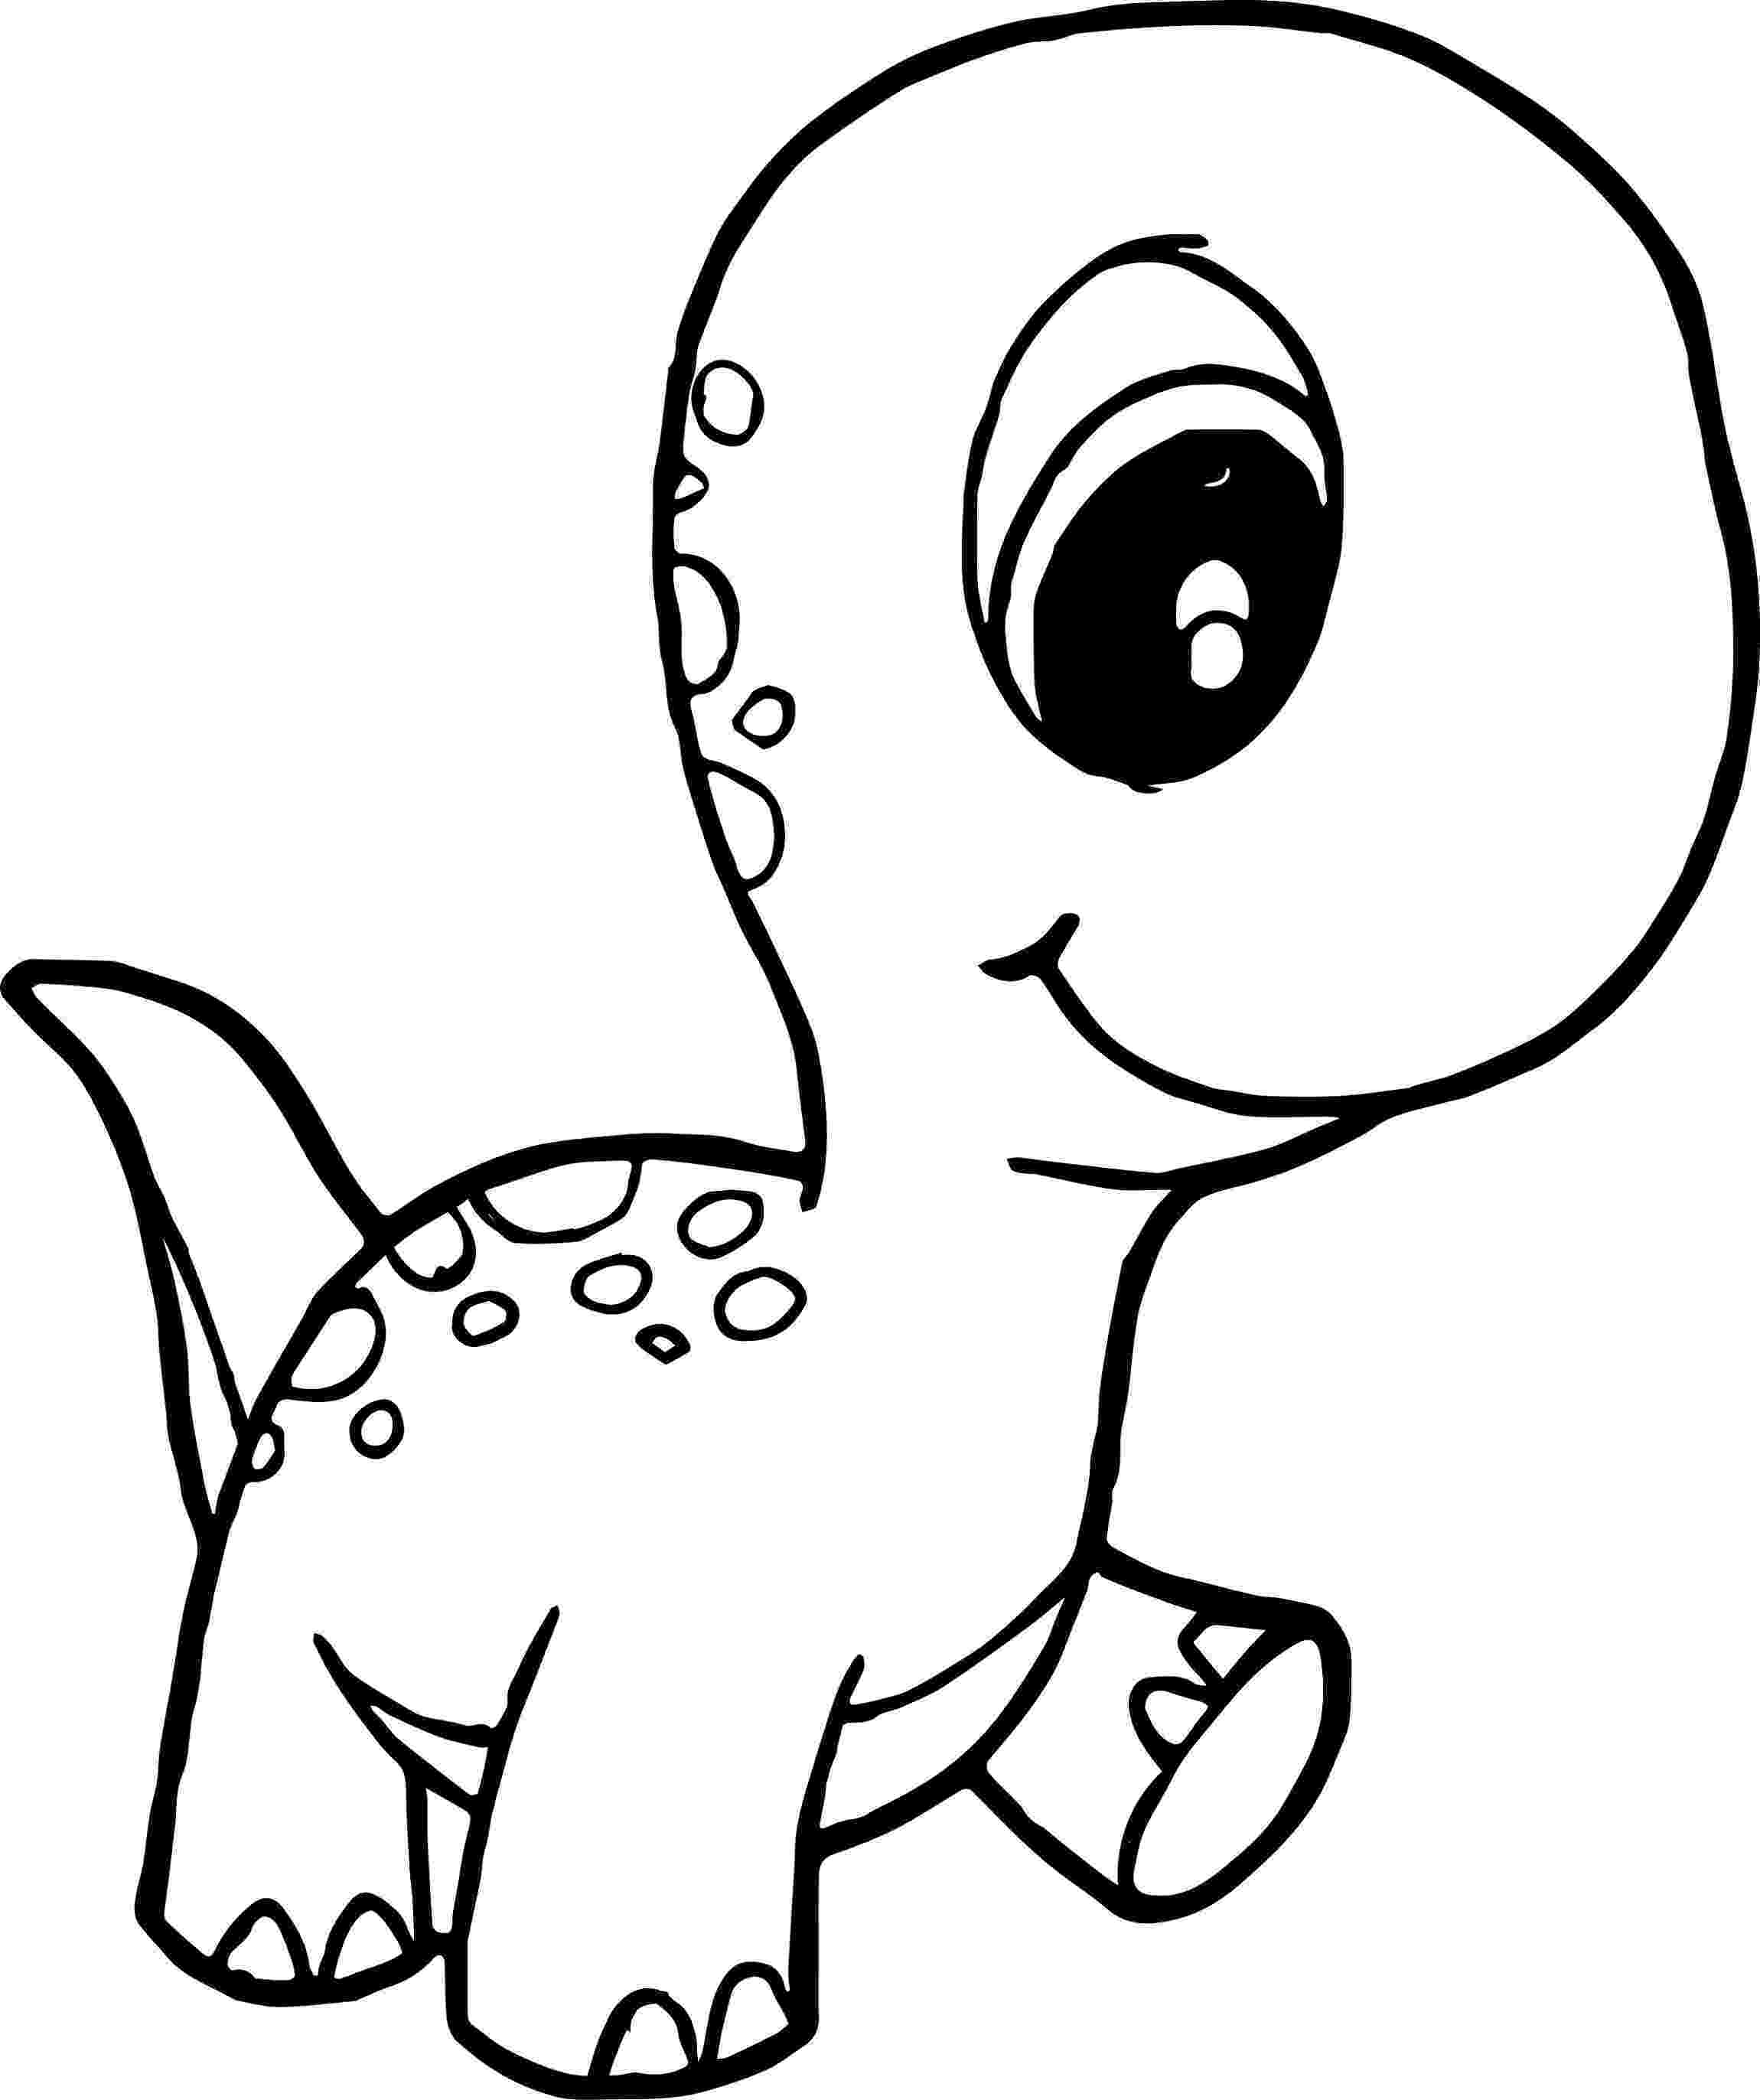 dinosaur color page baby dinosaur coloring pages for preschoolers activity color page dinosaur